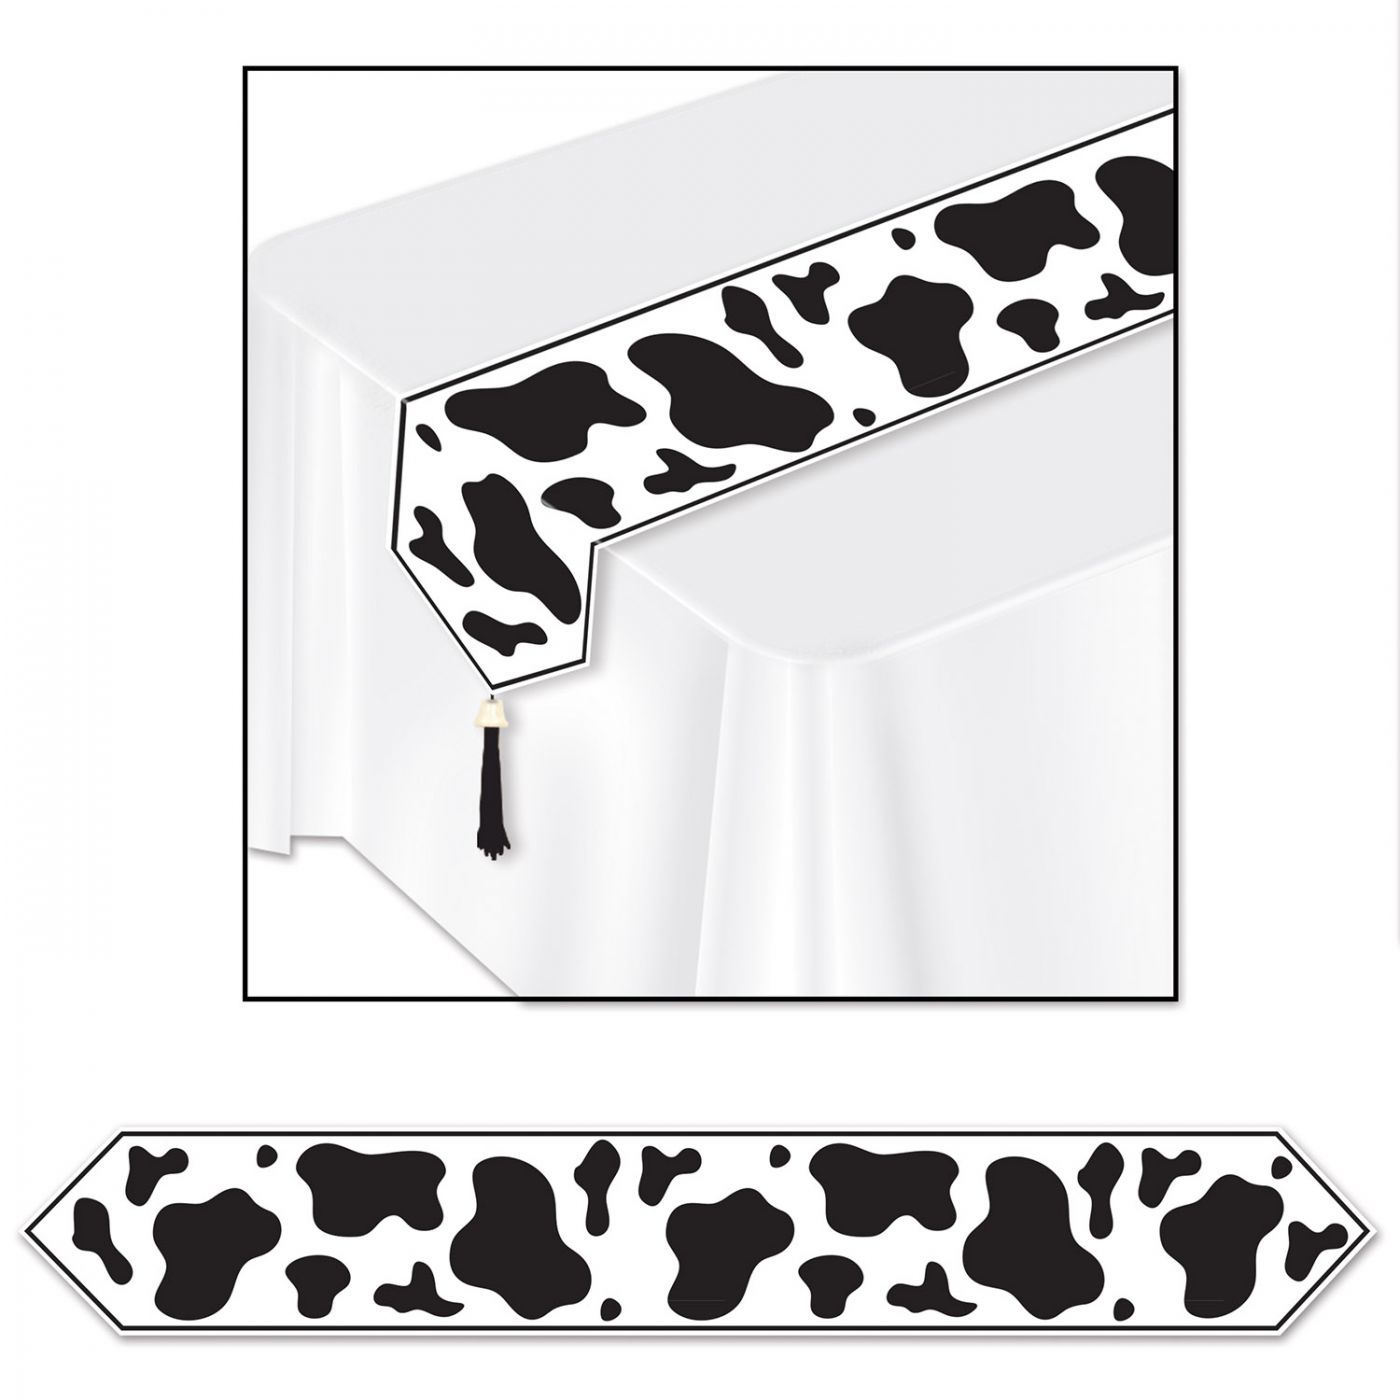 Printed Cow Print Table Runner image